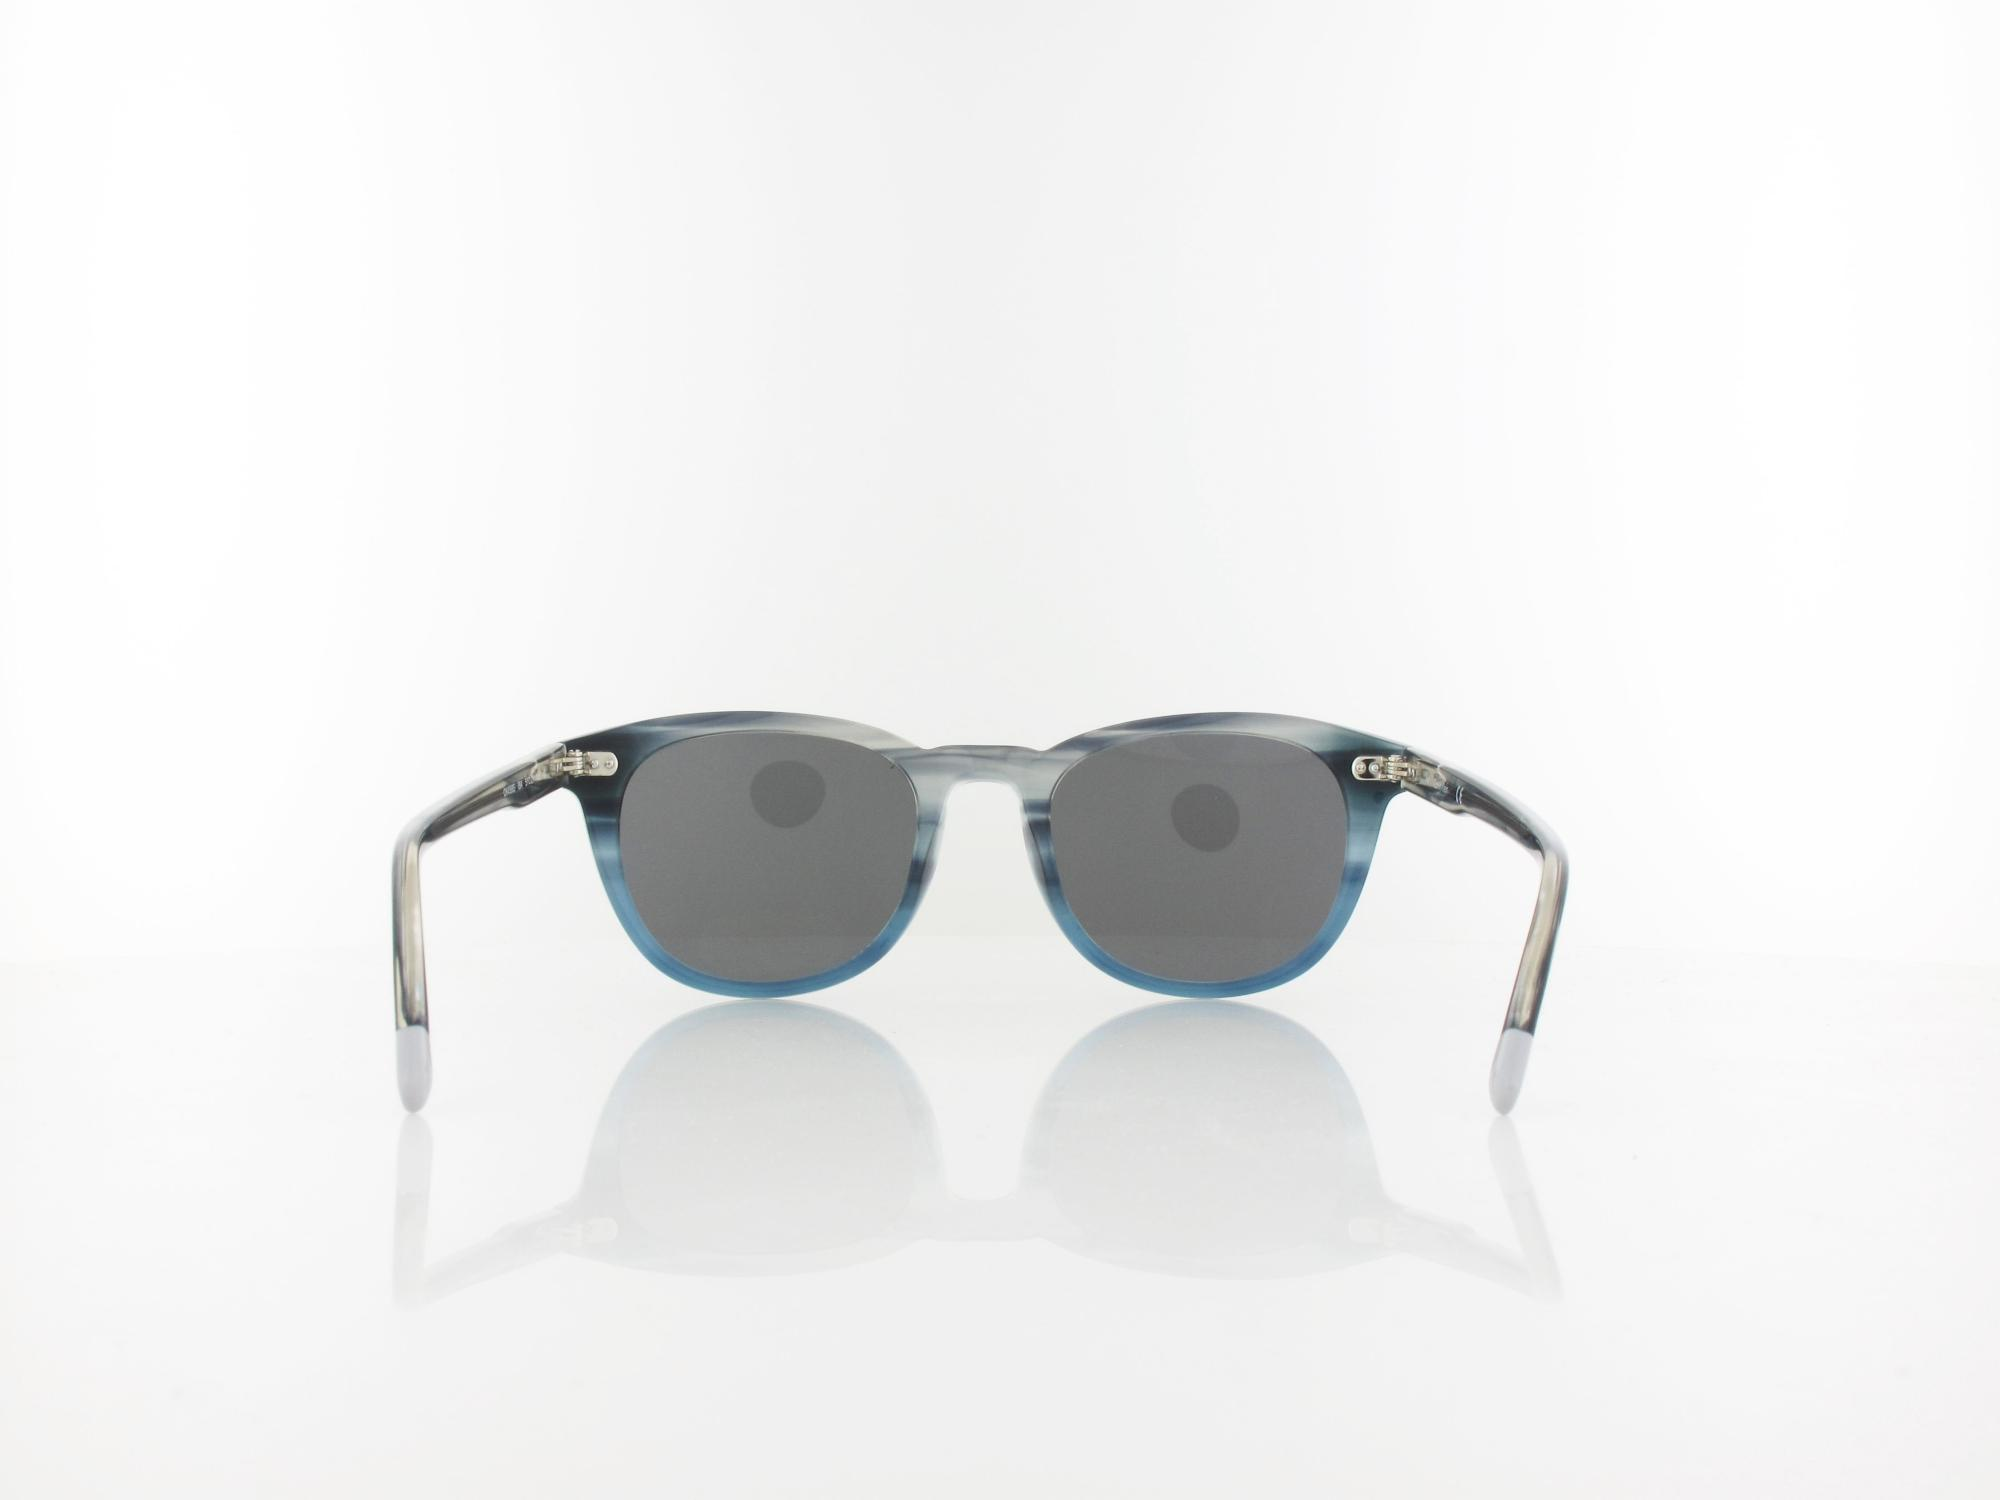 Calvin Klein | CK4358S 064 51 | striped grey blue / grey